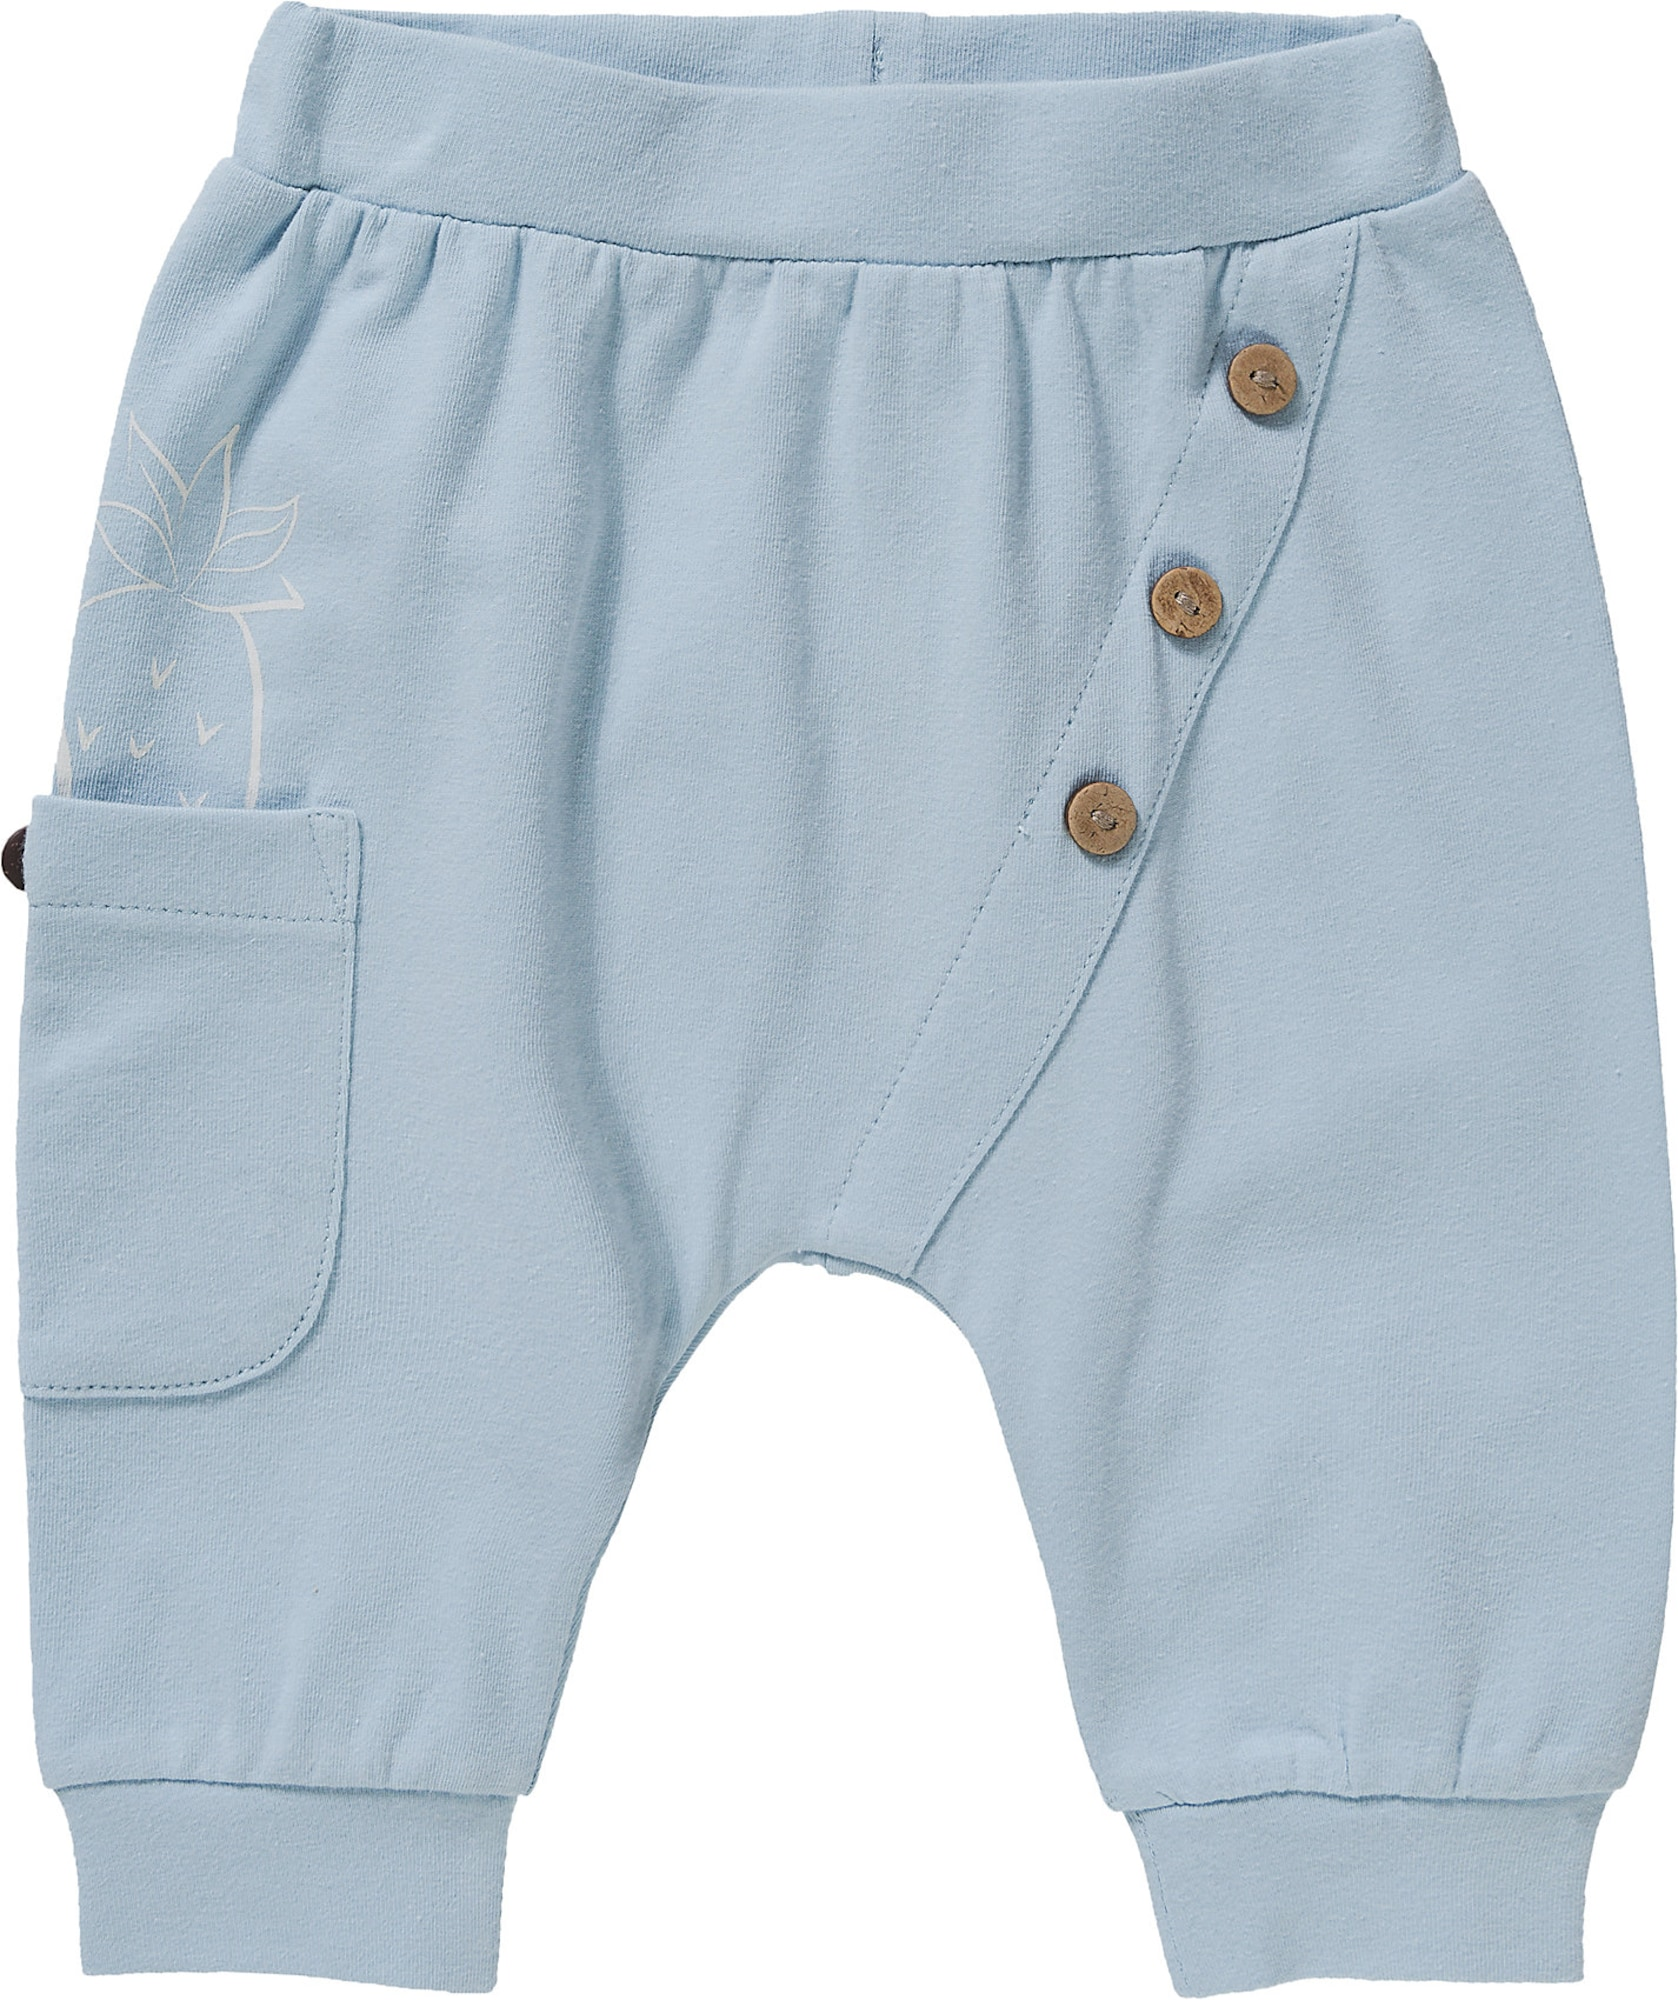 Babyhosen - Softbundhose - Onlineshop ABOUT YOU